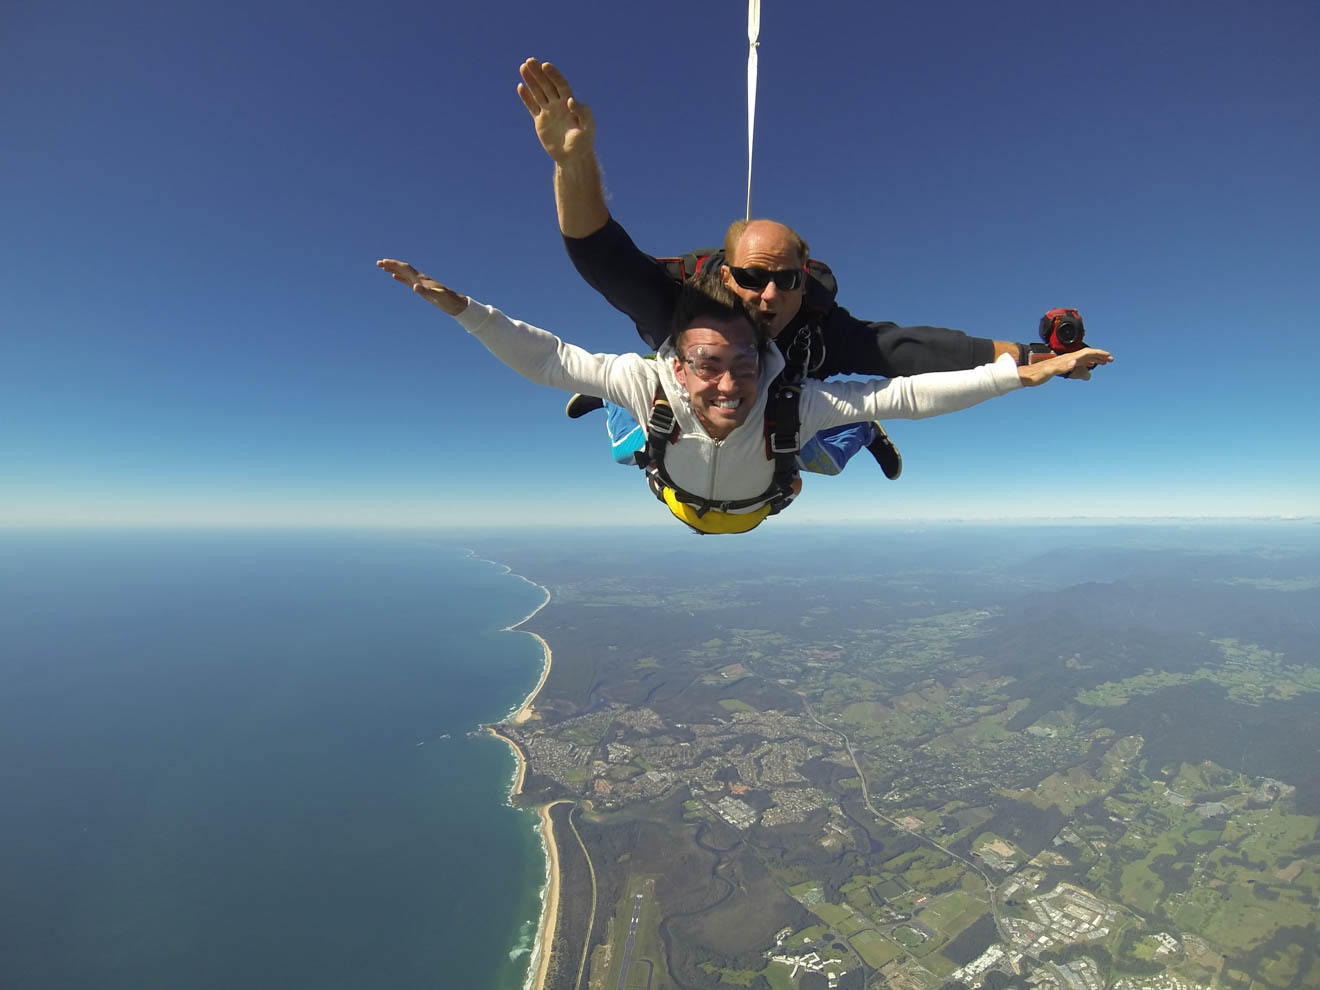 wollongong experiences - Skydiving Things to do in Wollongong